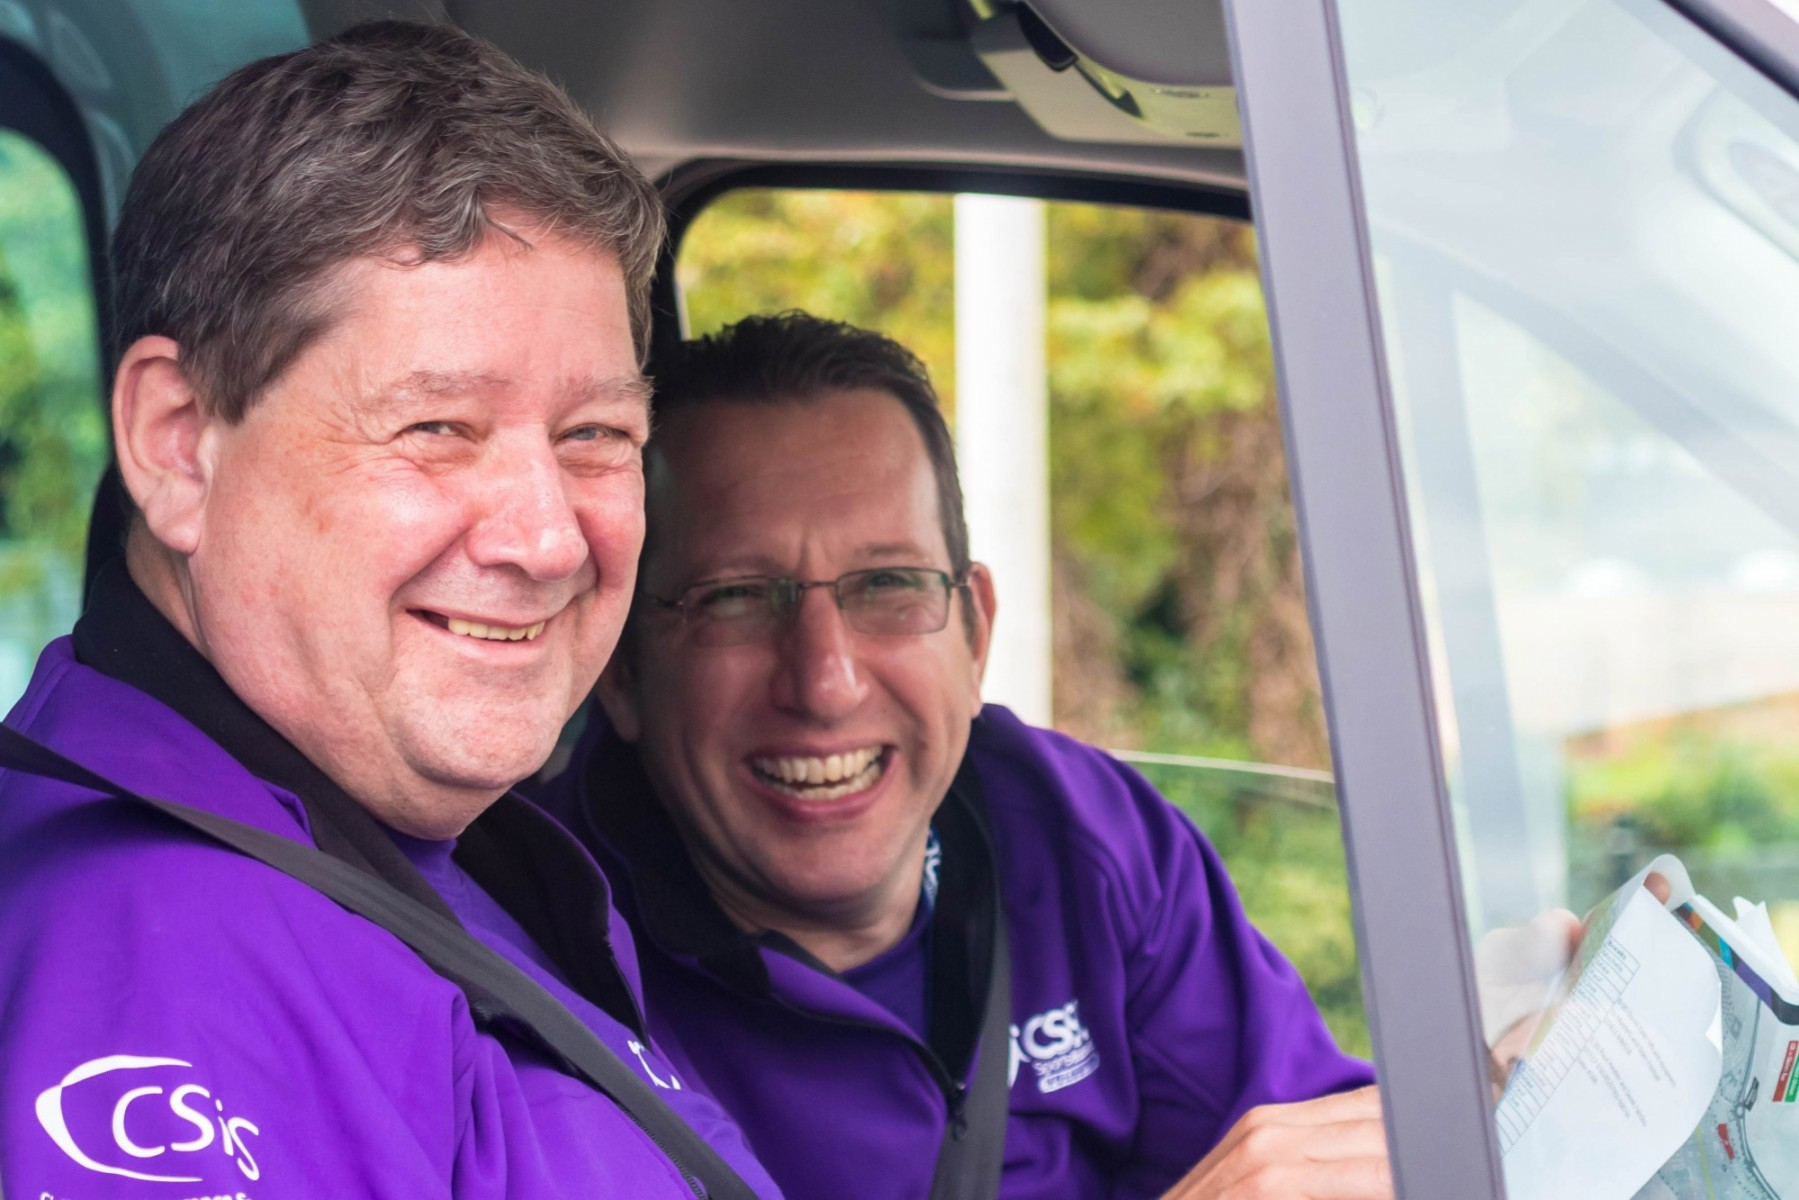 Two CSSC volunteers sat in a minibus smiling at the camera